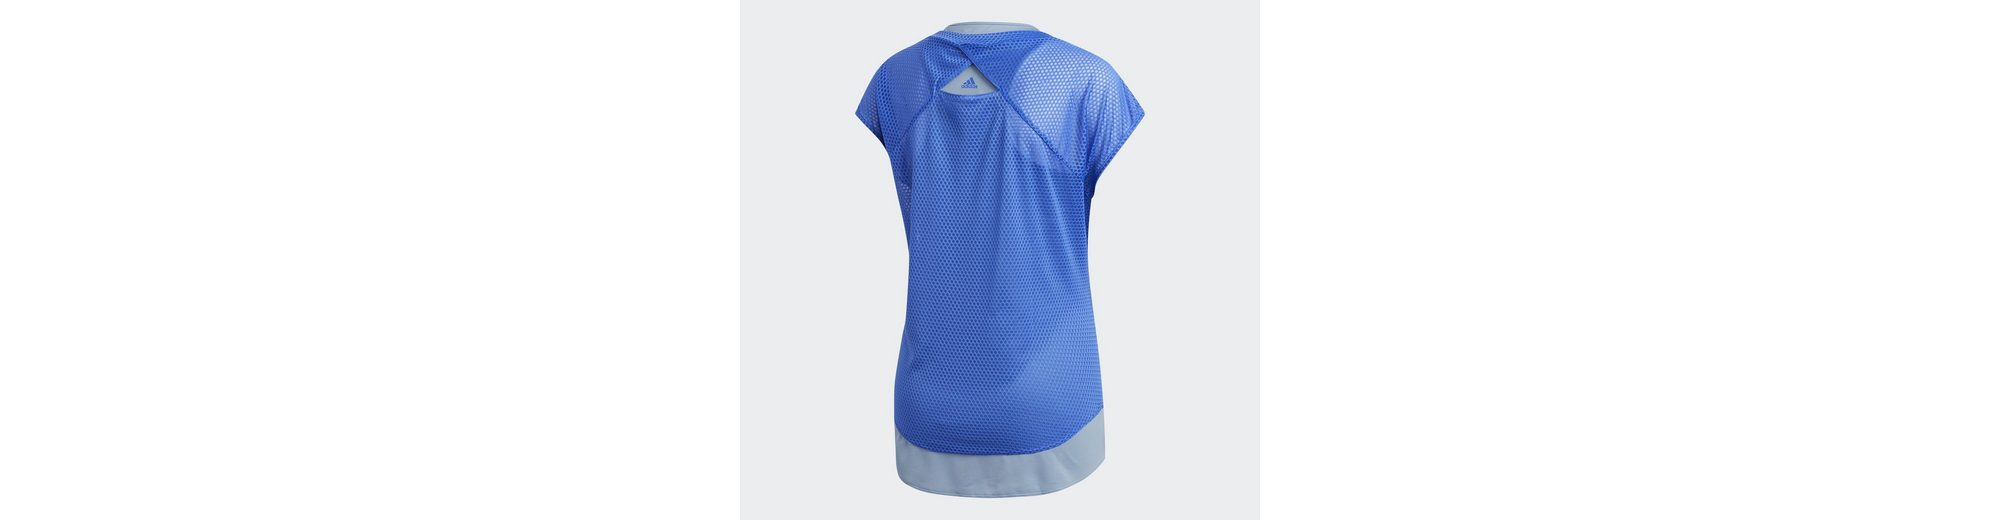 adidas Performance T-Shirt Supernova TKO Two-in-One UV T-Shirt Kostenloser Versand Spielraum Besten QlUdCe0up